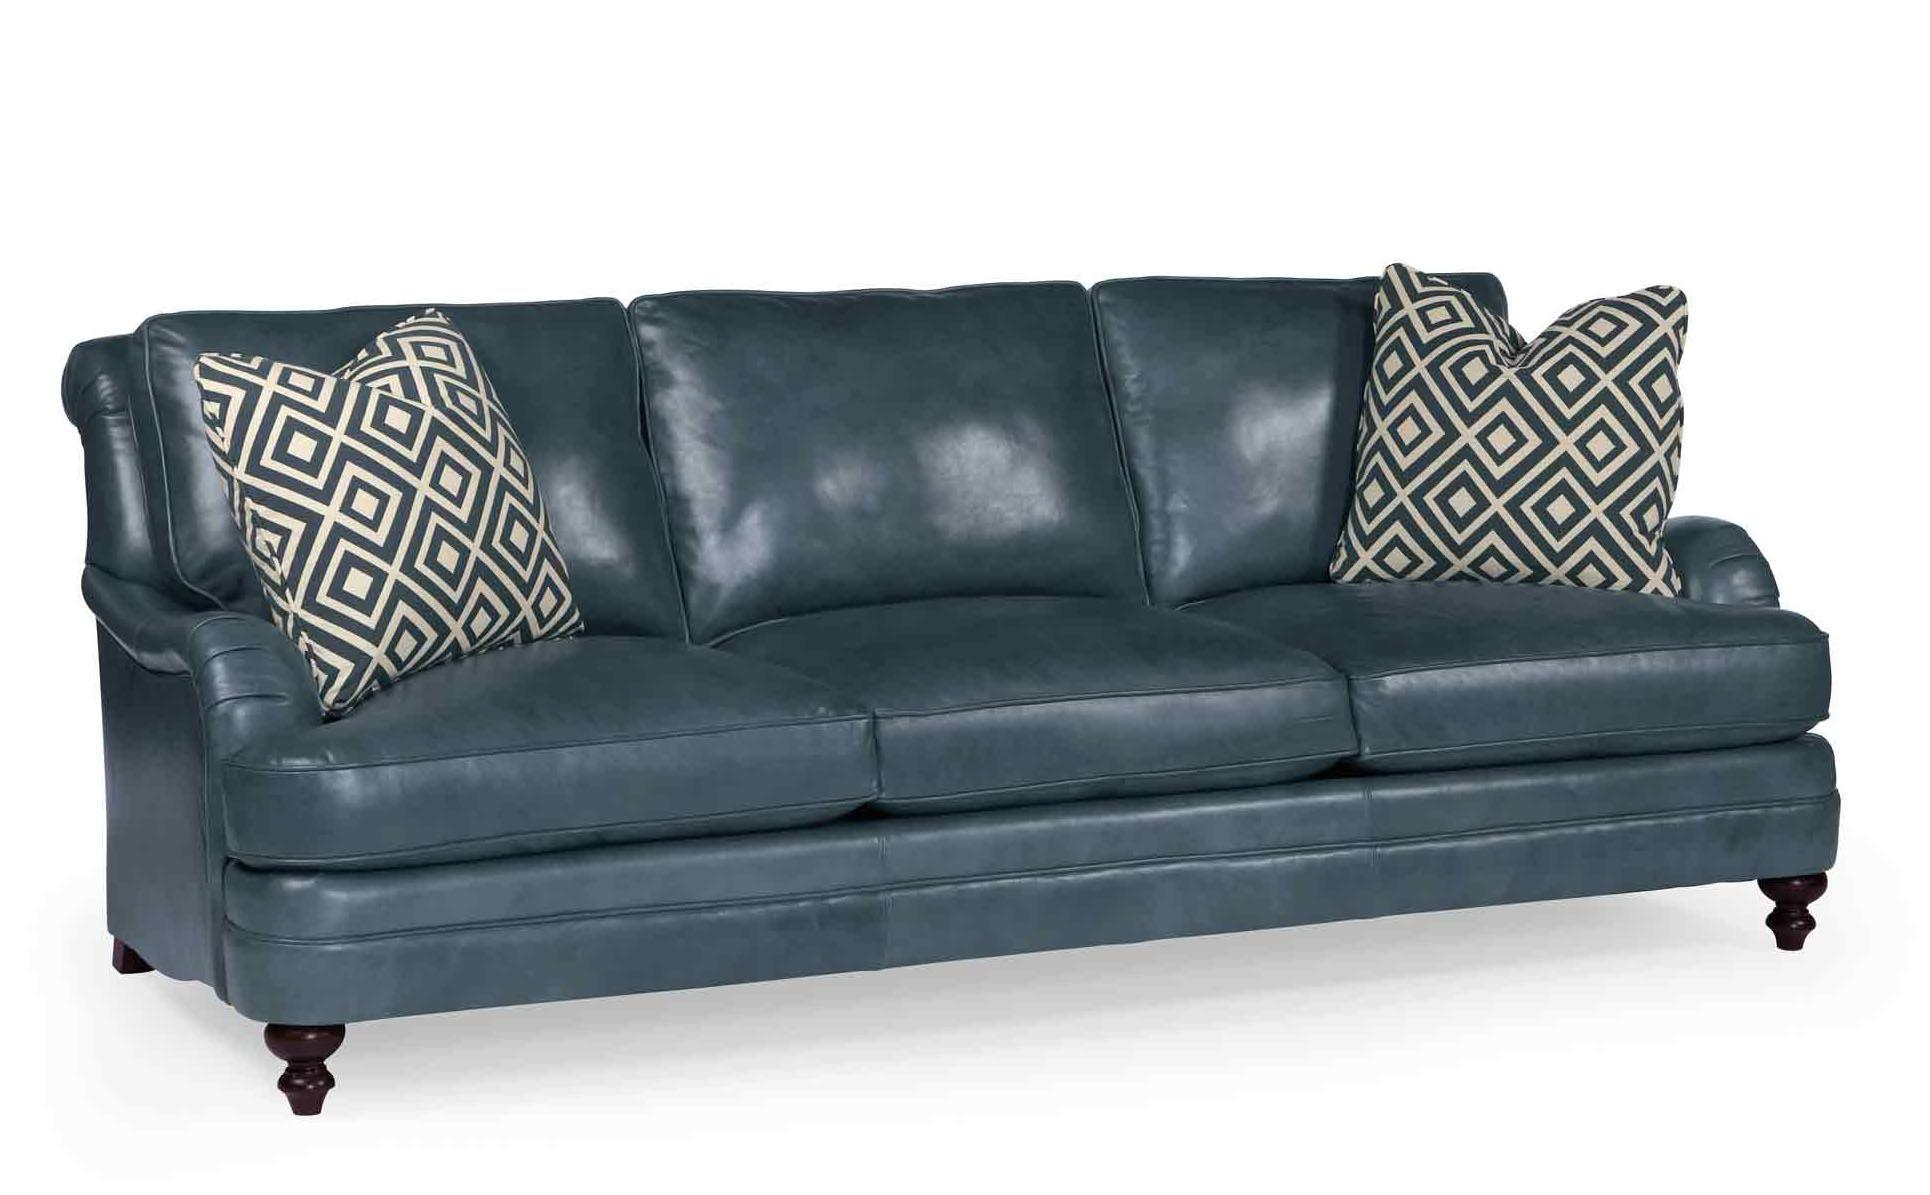 Blue Leather Sectional Couch Images Frompo 1